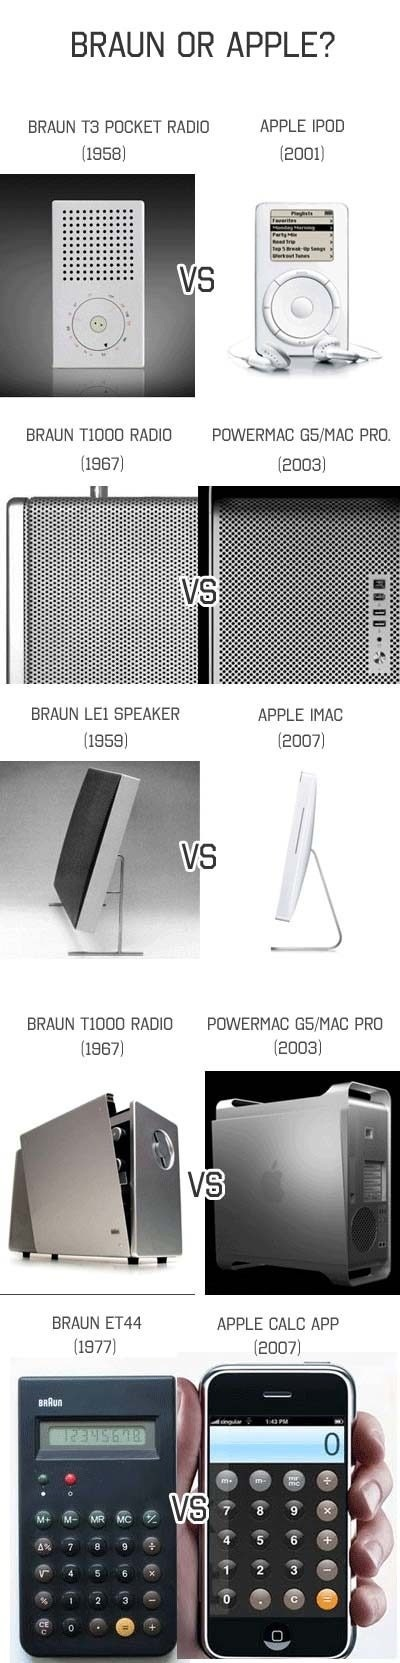 Braun or Apple?